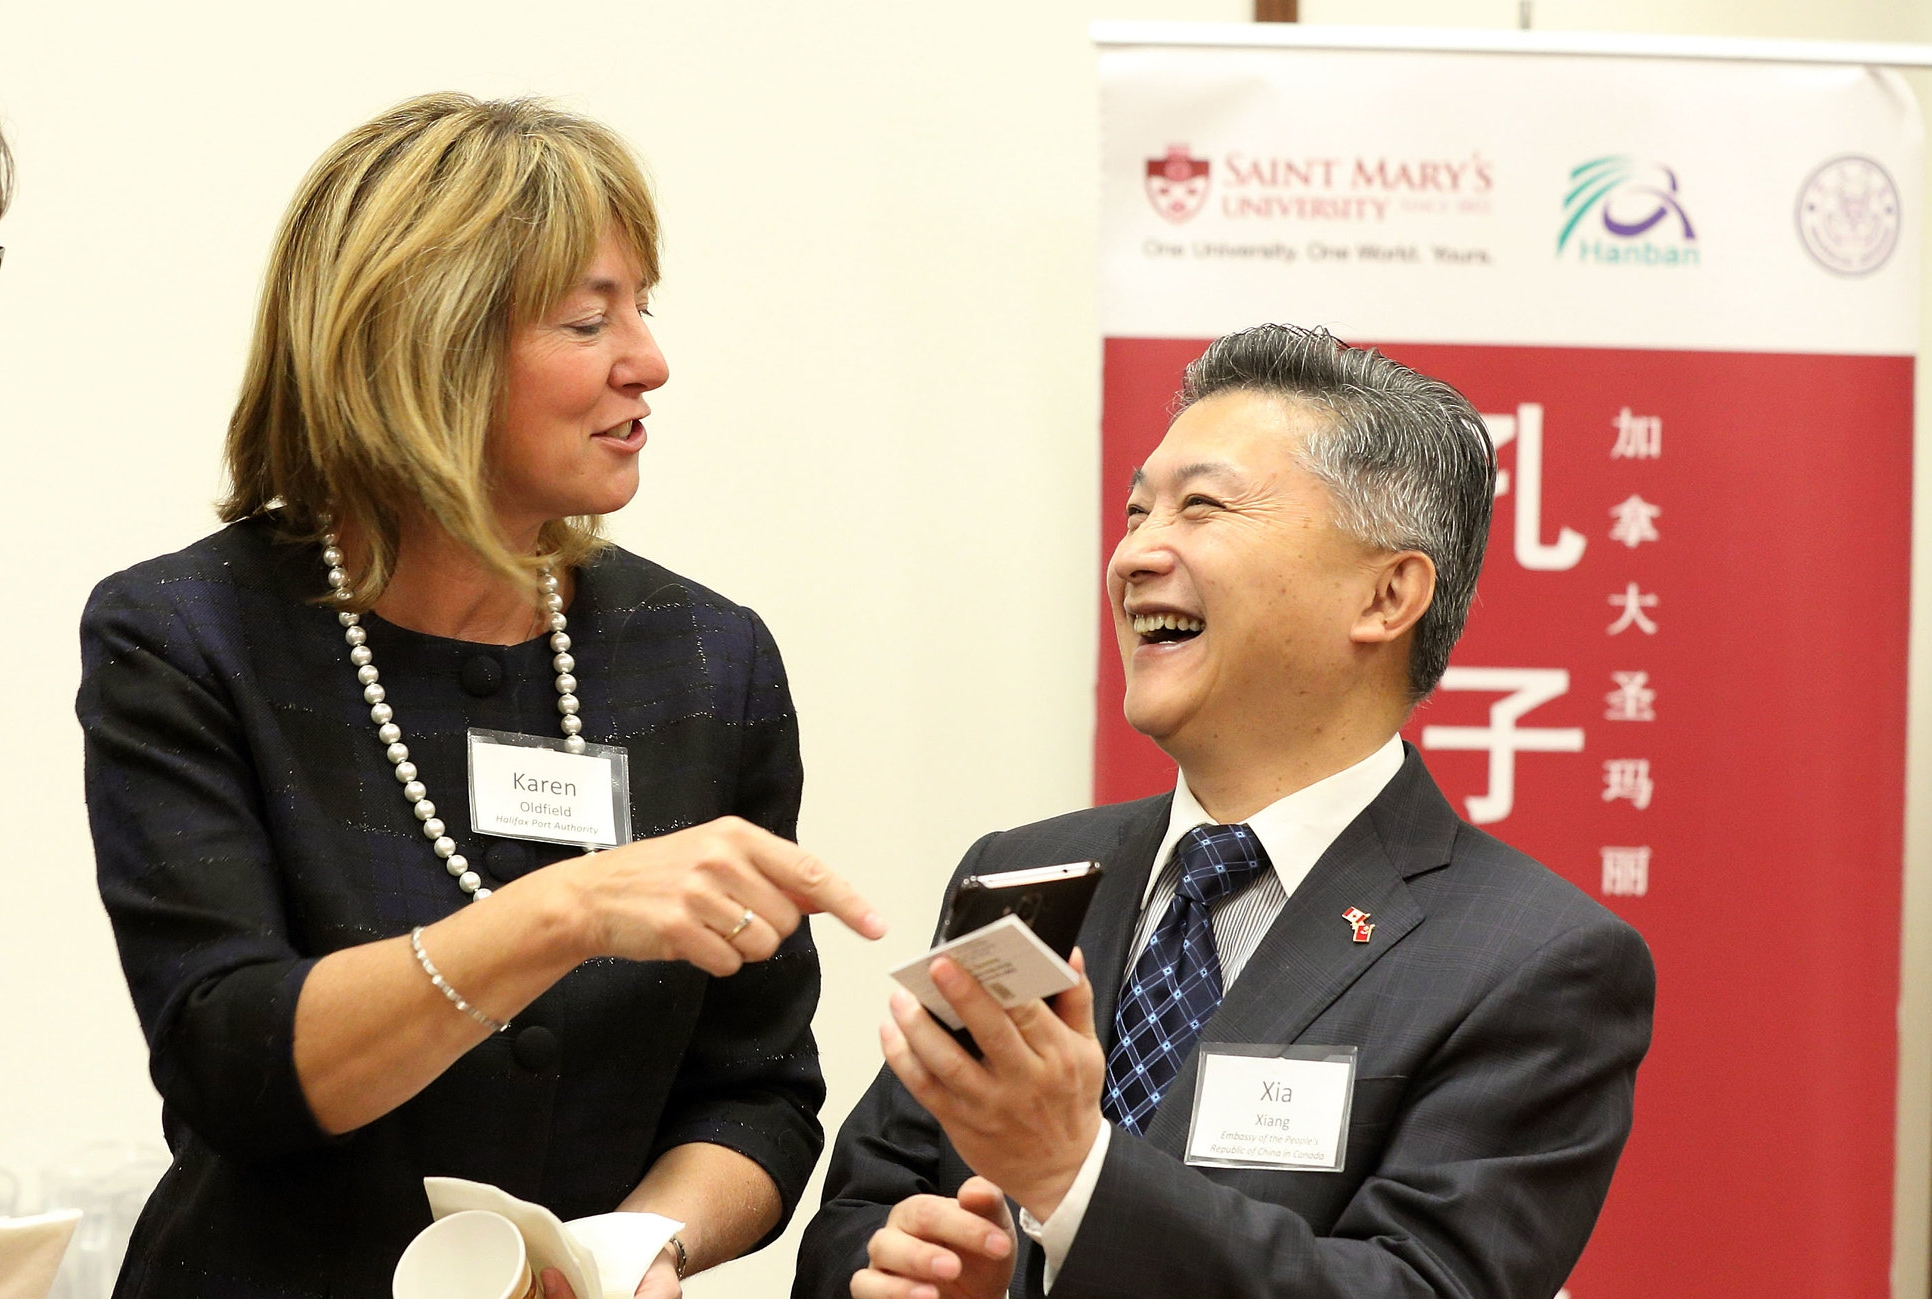 Karen Oldfield, President and CEO, Halifax Port Authority & Chair, Board of  Governors, Saint Mary's University, with Minister and Counsellor Xia Xang, Embassy of the People's Republic of China to Canada